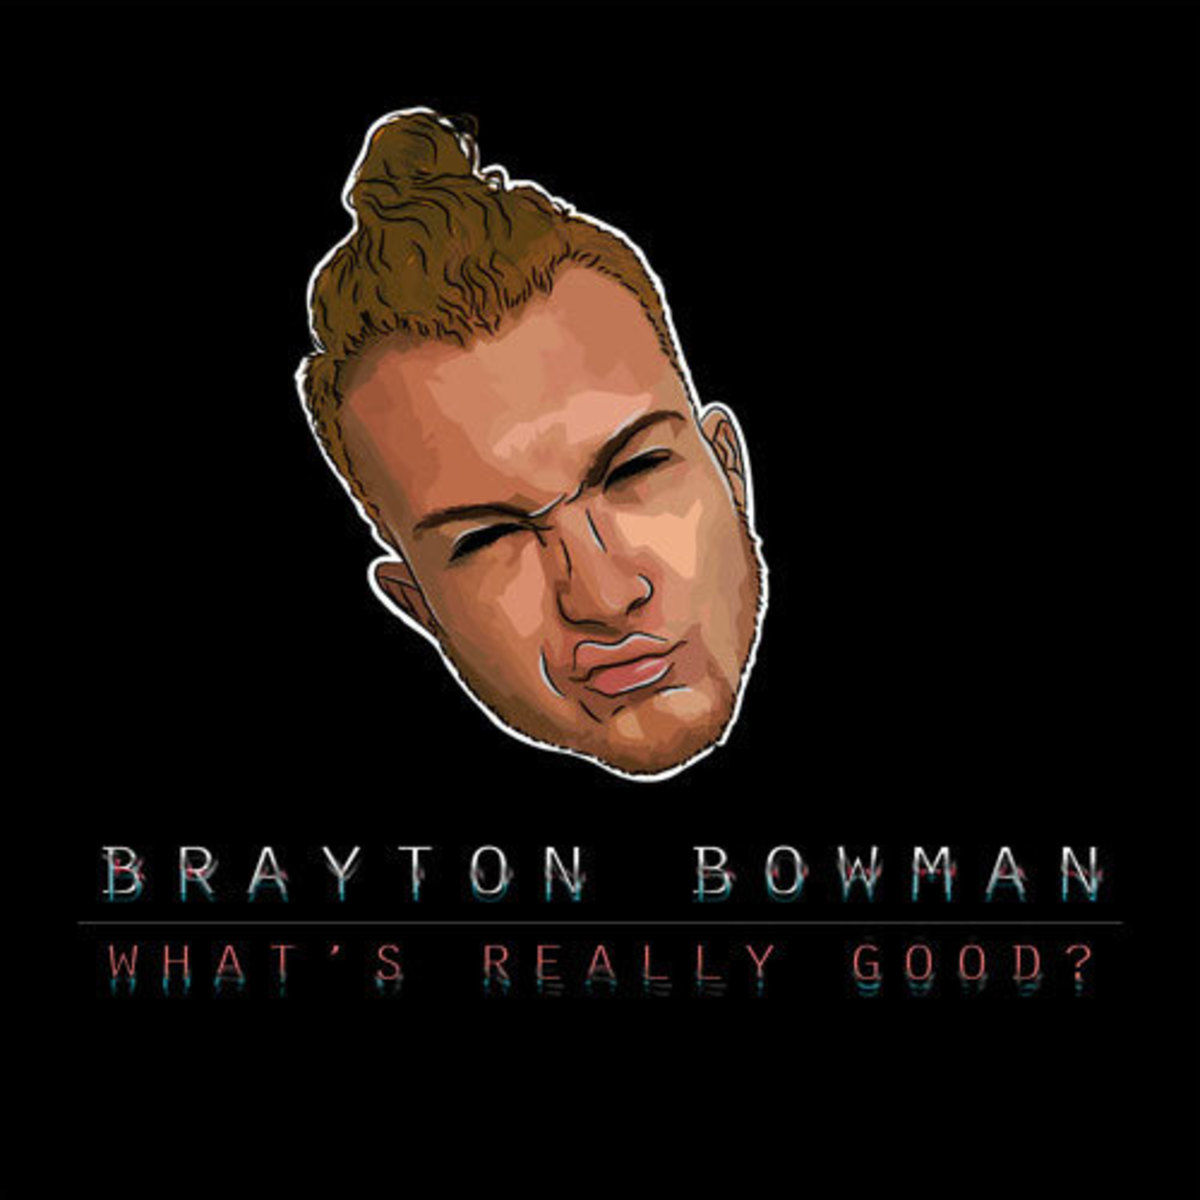 brayton-bowman-whats-really-good.jpg